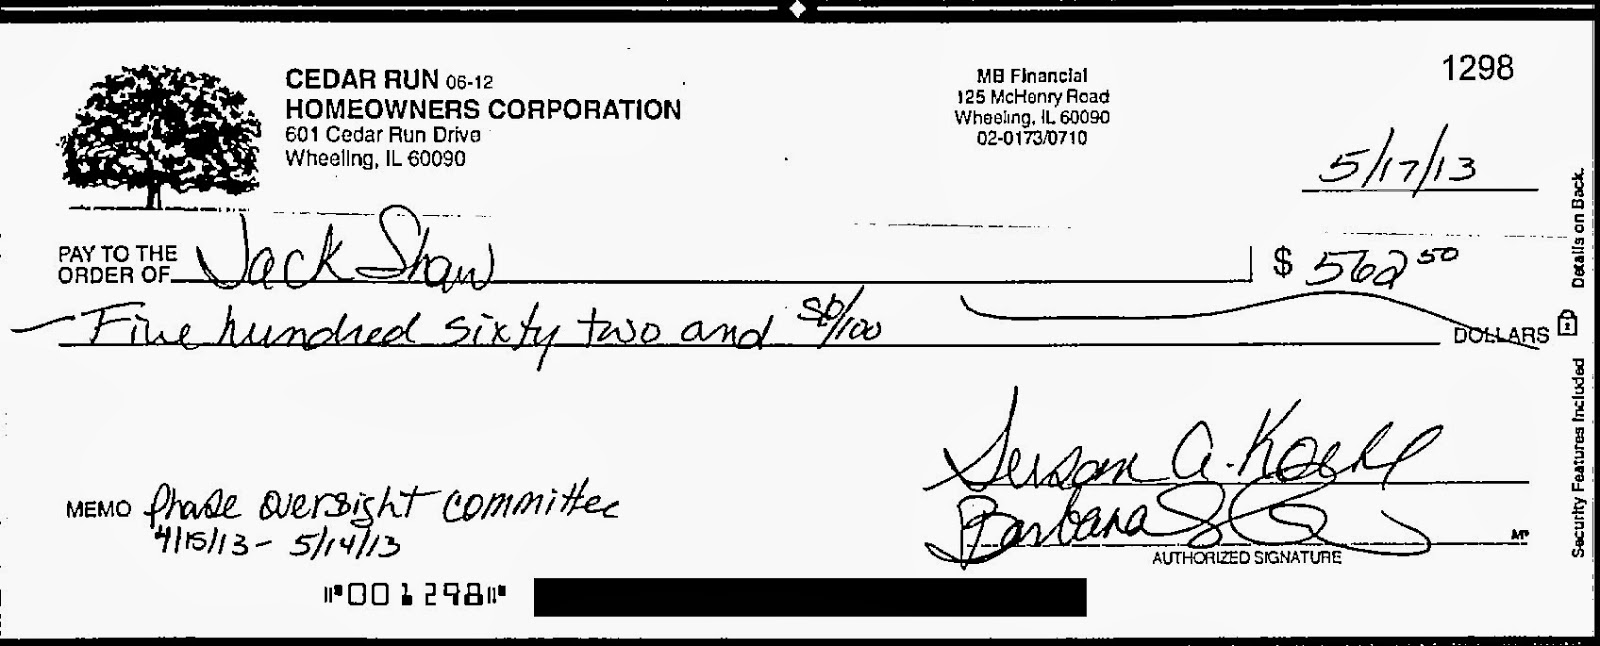 Cedar run concerned homeowners robert shers fantasy world whether its water bills oversight committee fees or insurance its called commingling of funds and its illegal see the check images below ccuart Image collections